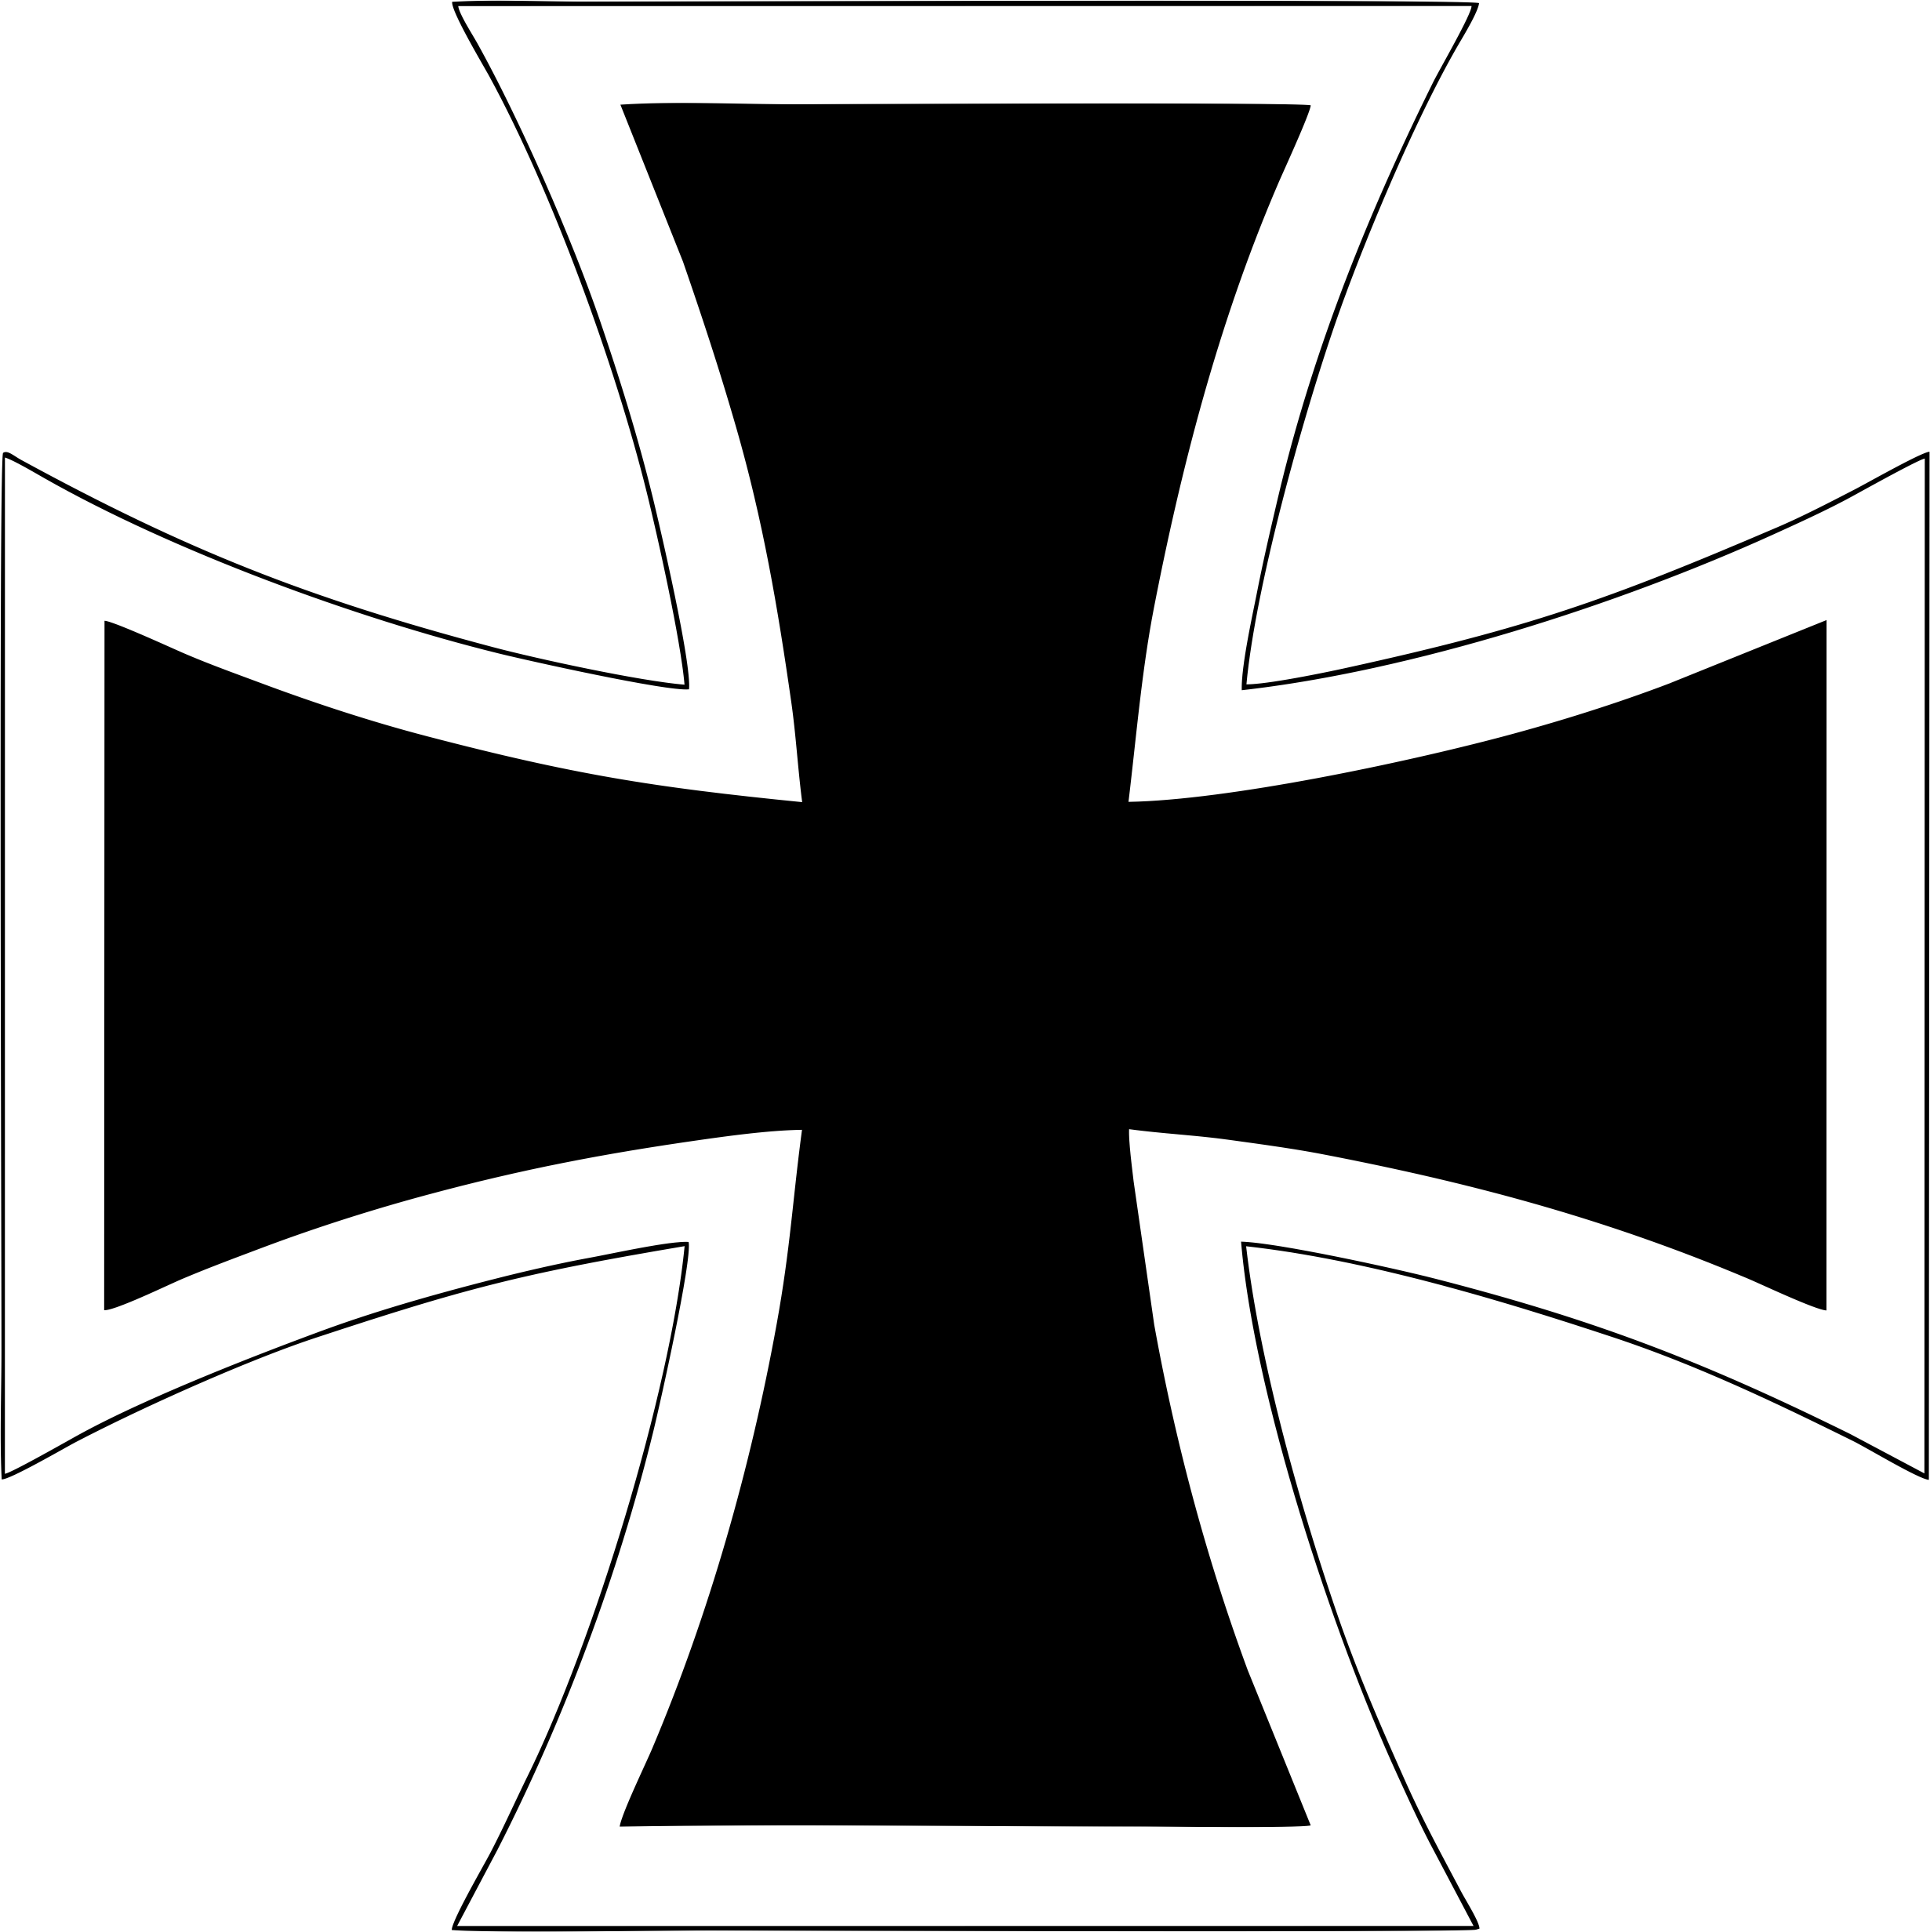 Antique iron cross free clipart clipart images gallery for.